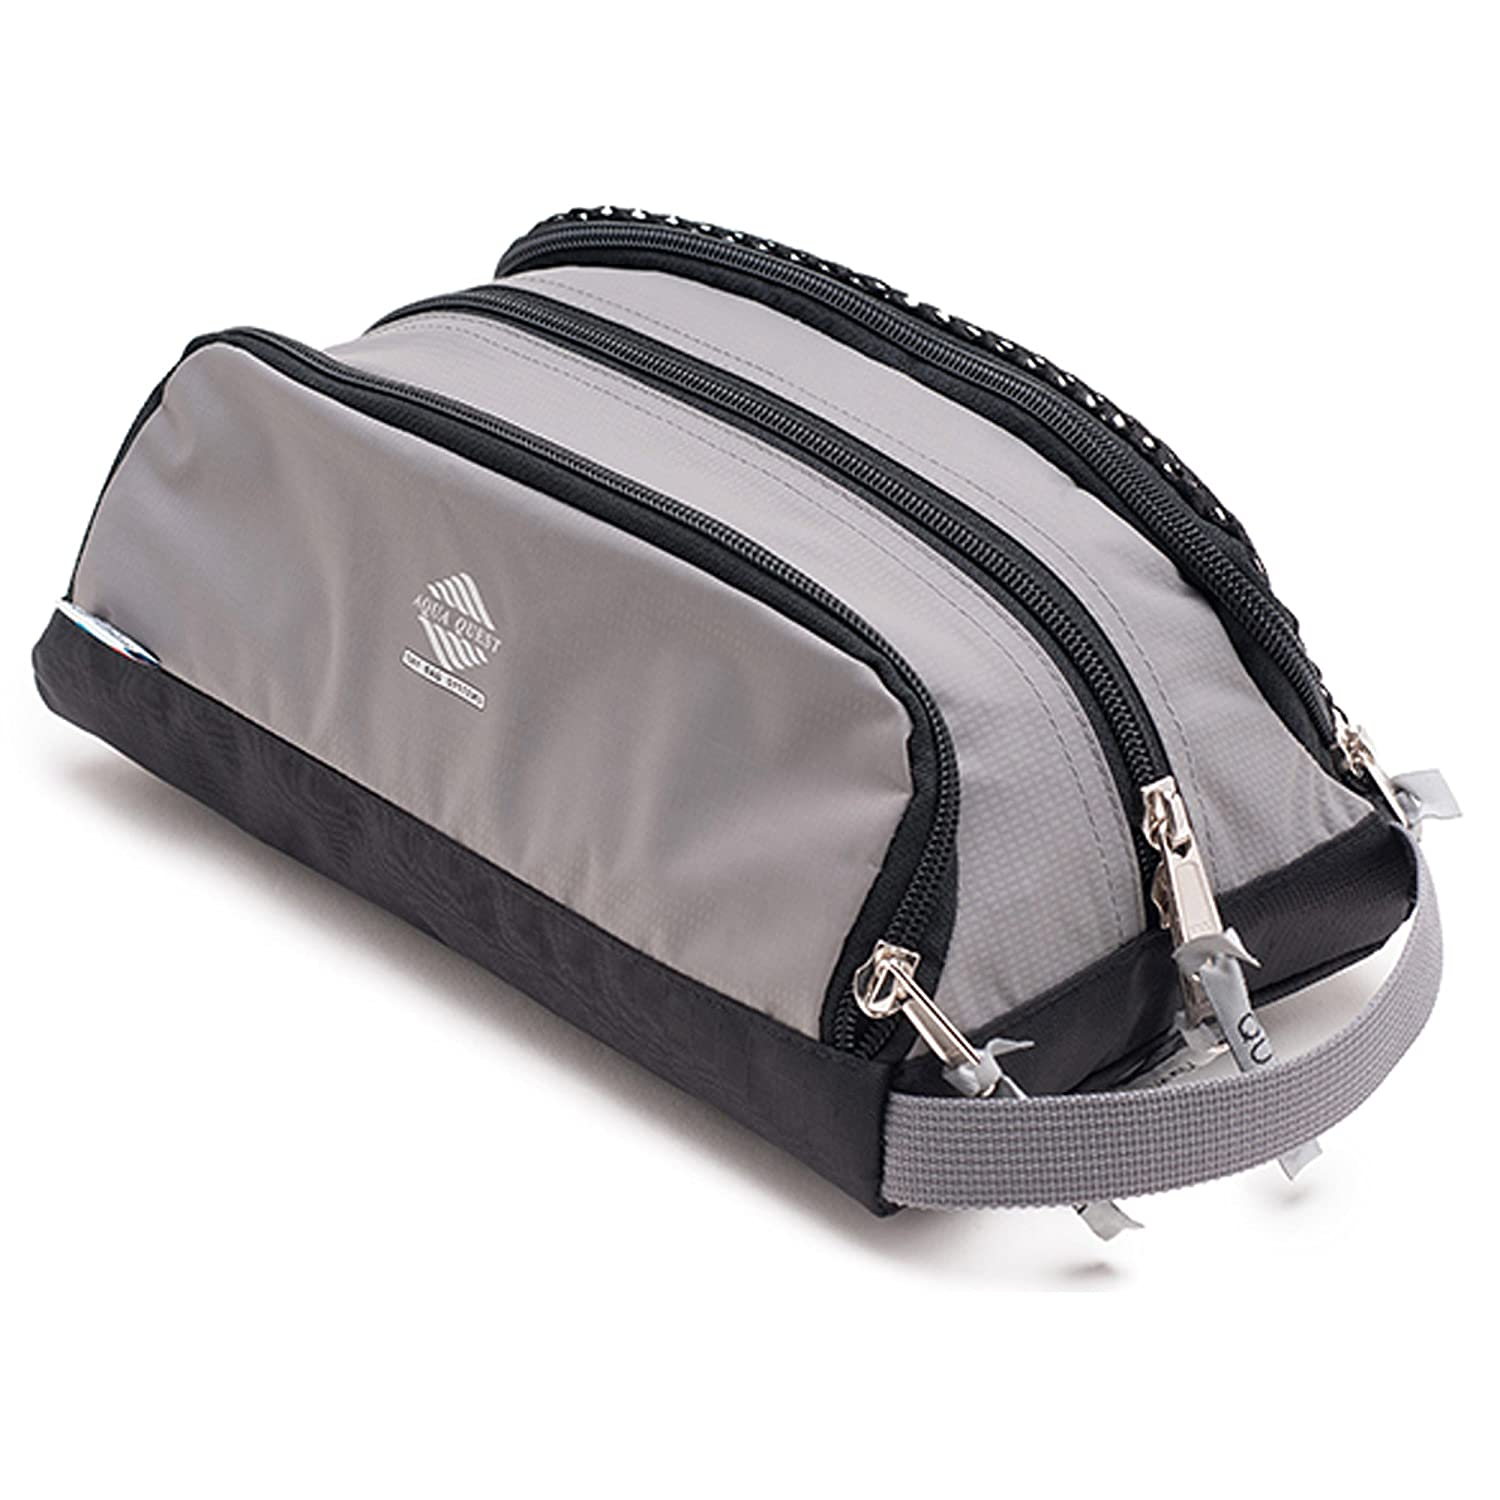 Aqua Quest CHAMELEON Grey Travel Bag Water Resistant Pouch with Three Compartments for Travel, School, Outdoors